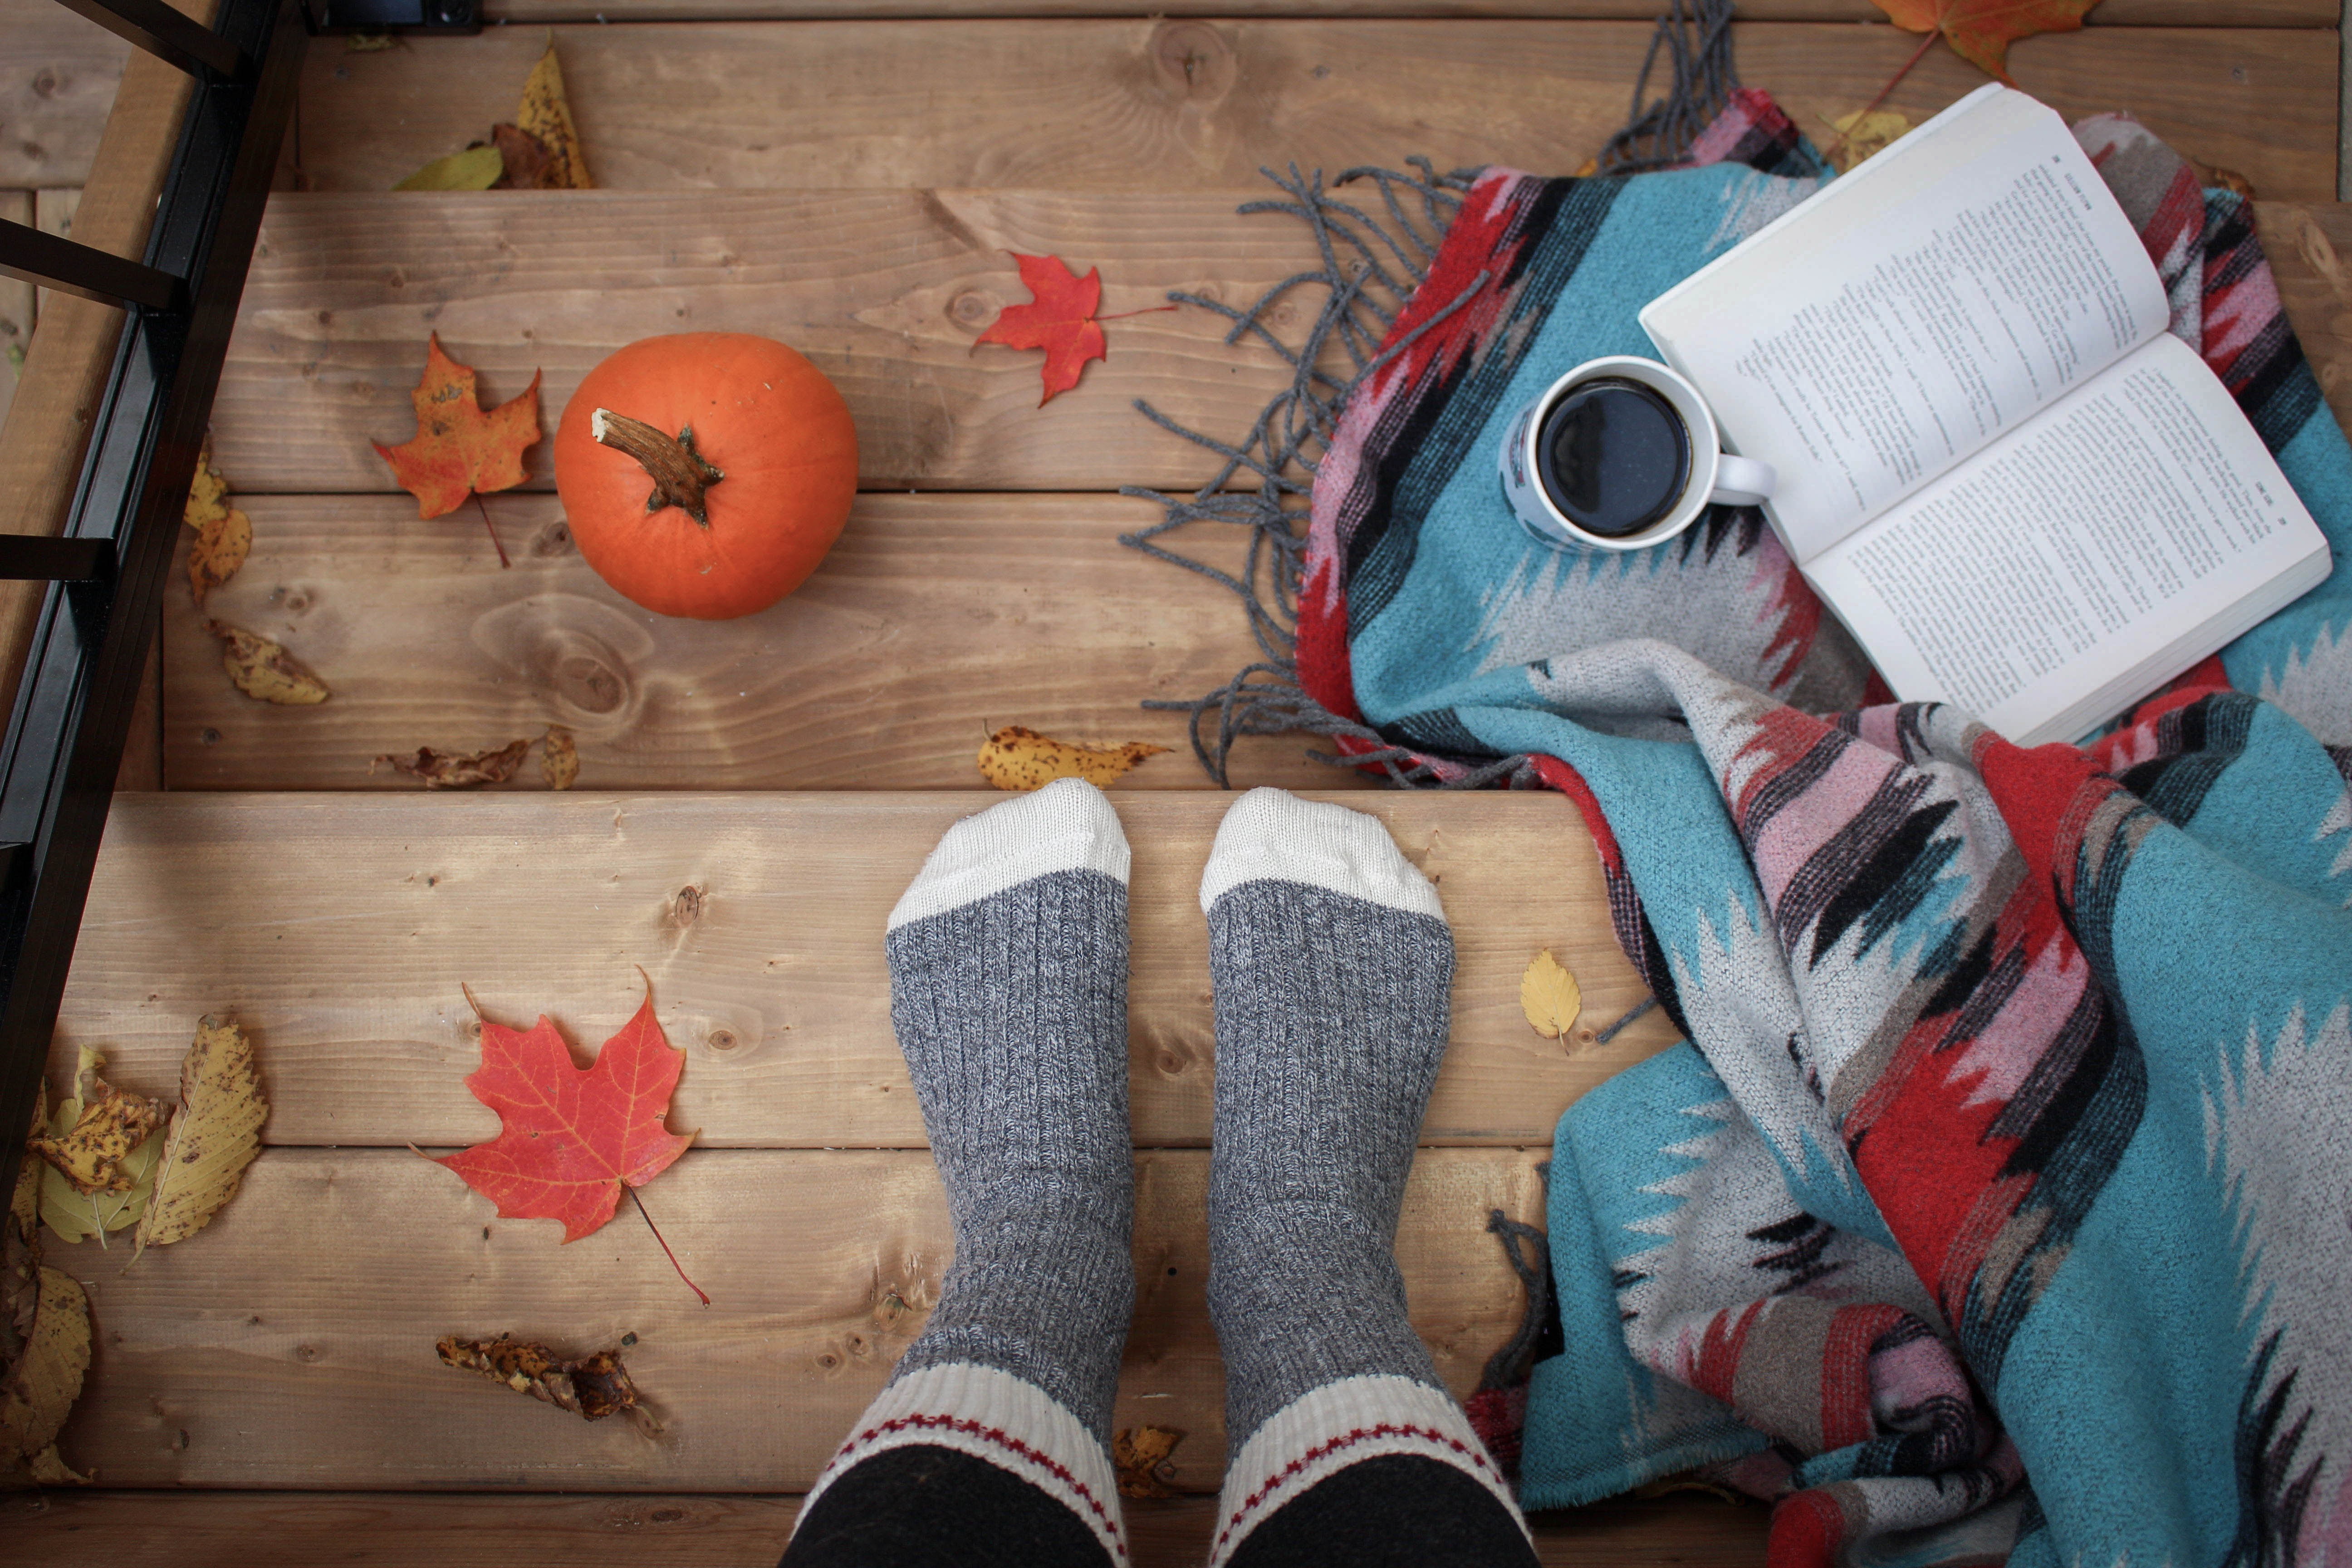 porch steps with view of feet with socks and fall foliage with a pumpkin, coffee and book